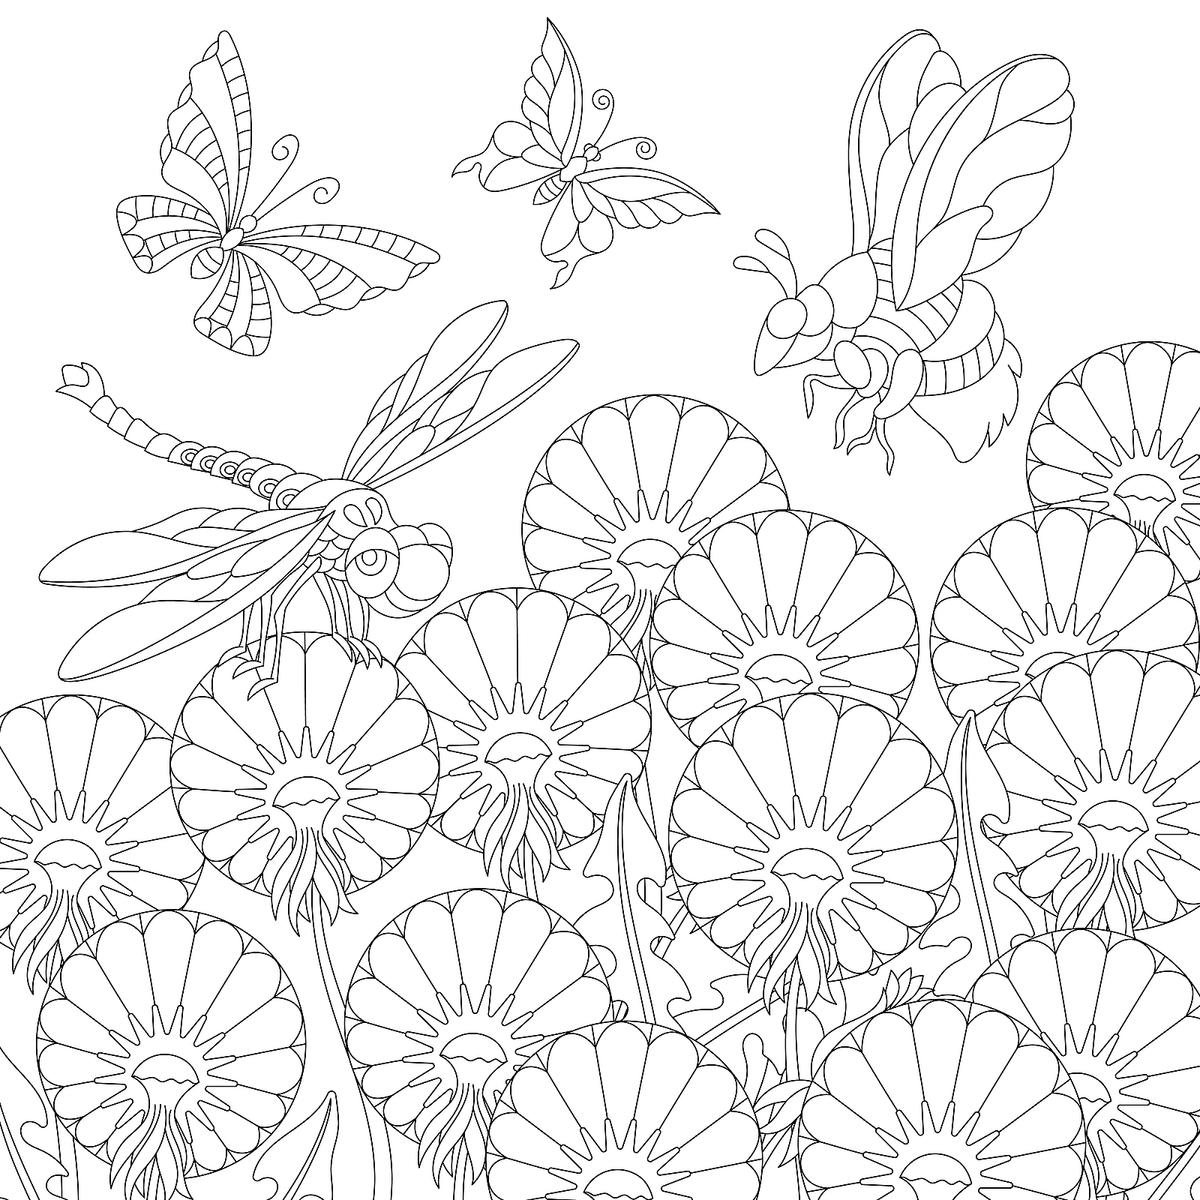 Summer Flowers Coloring Pages: 10 Free & Fun Printable ...